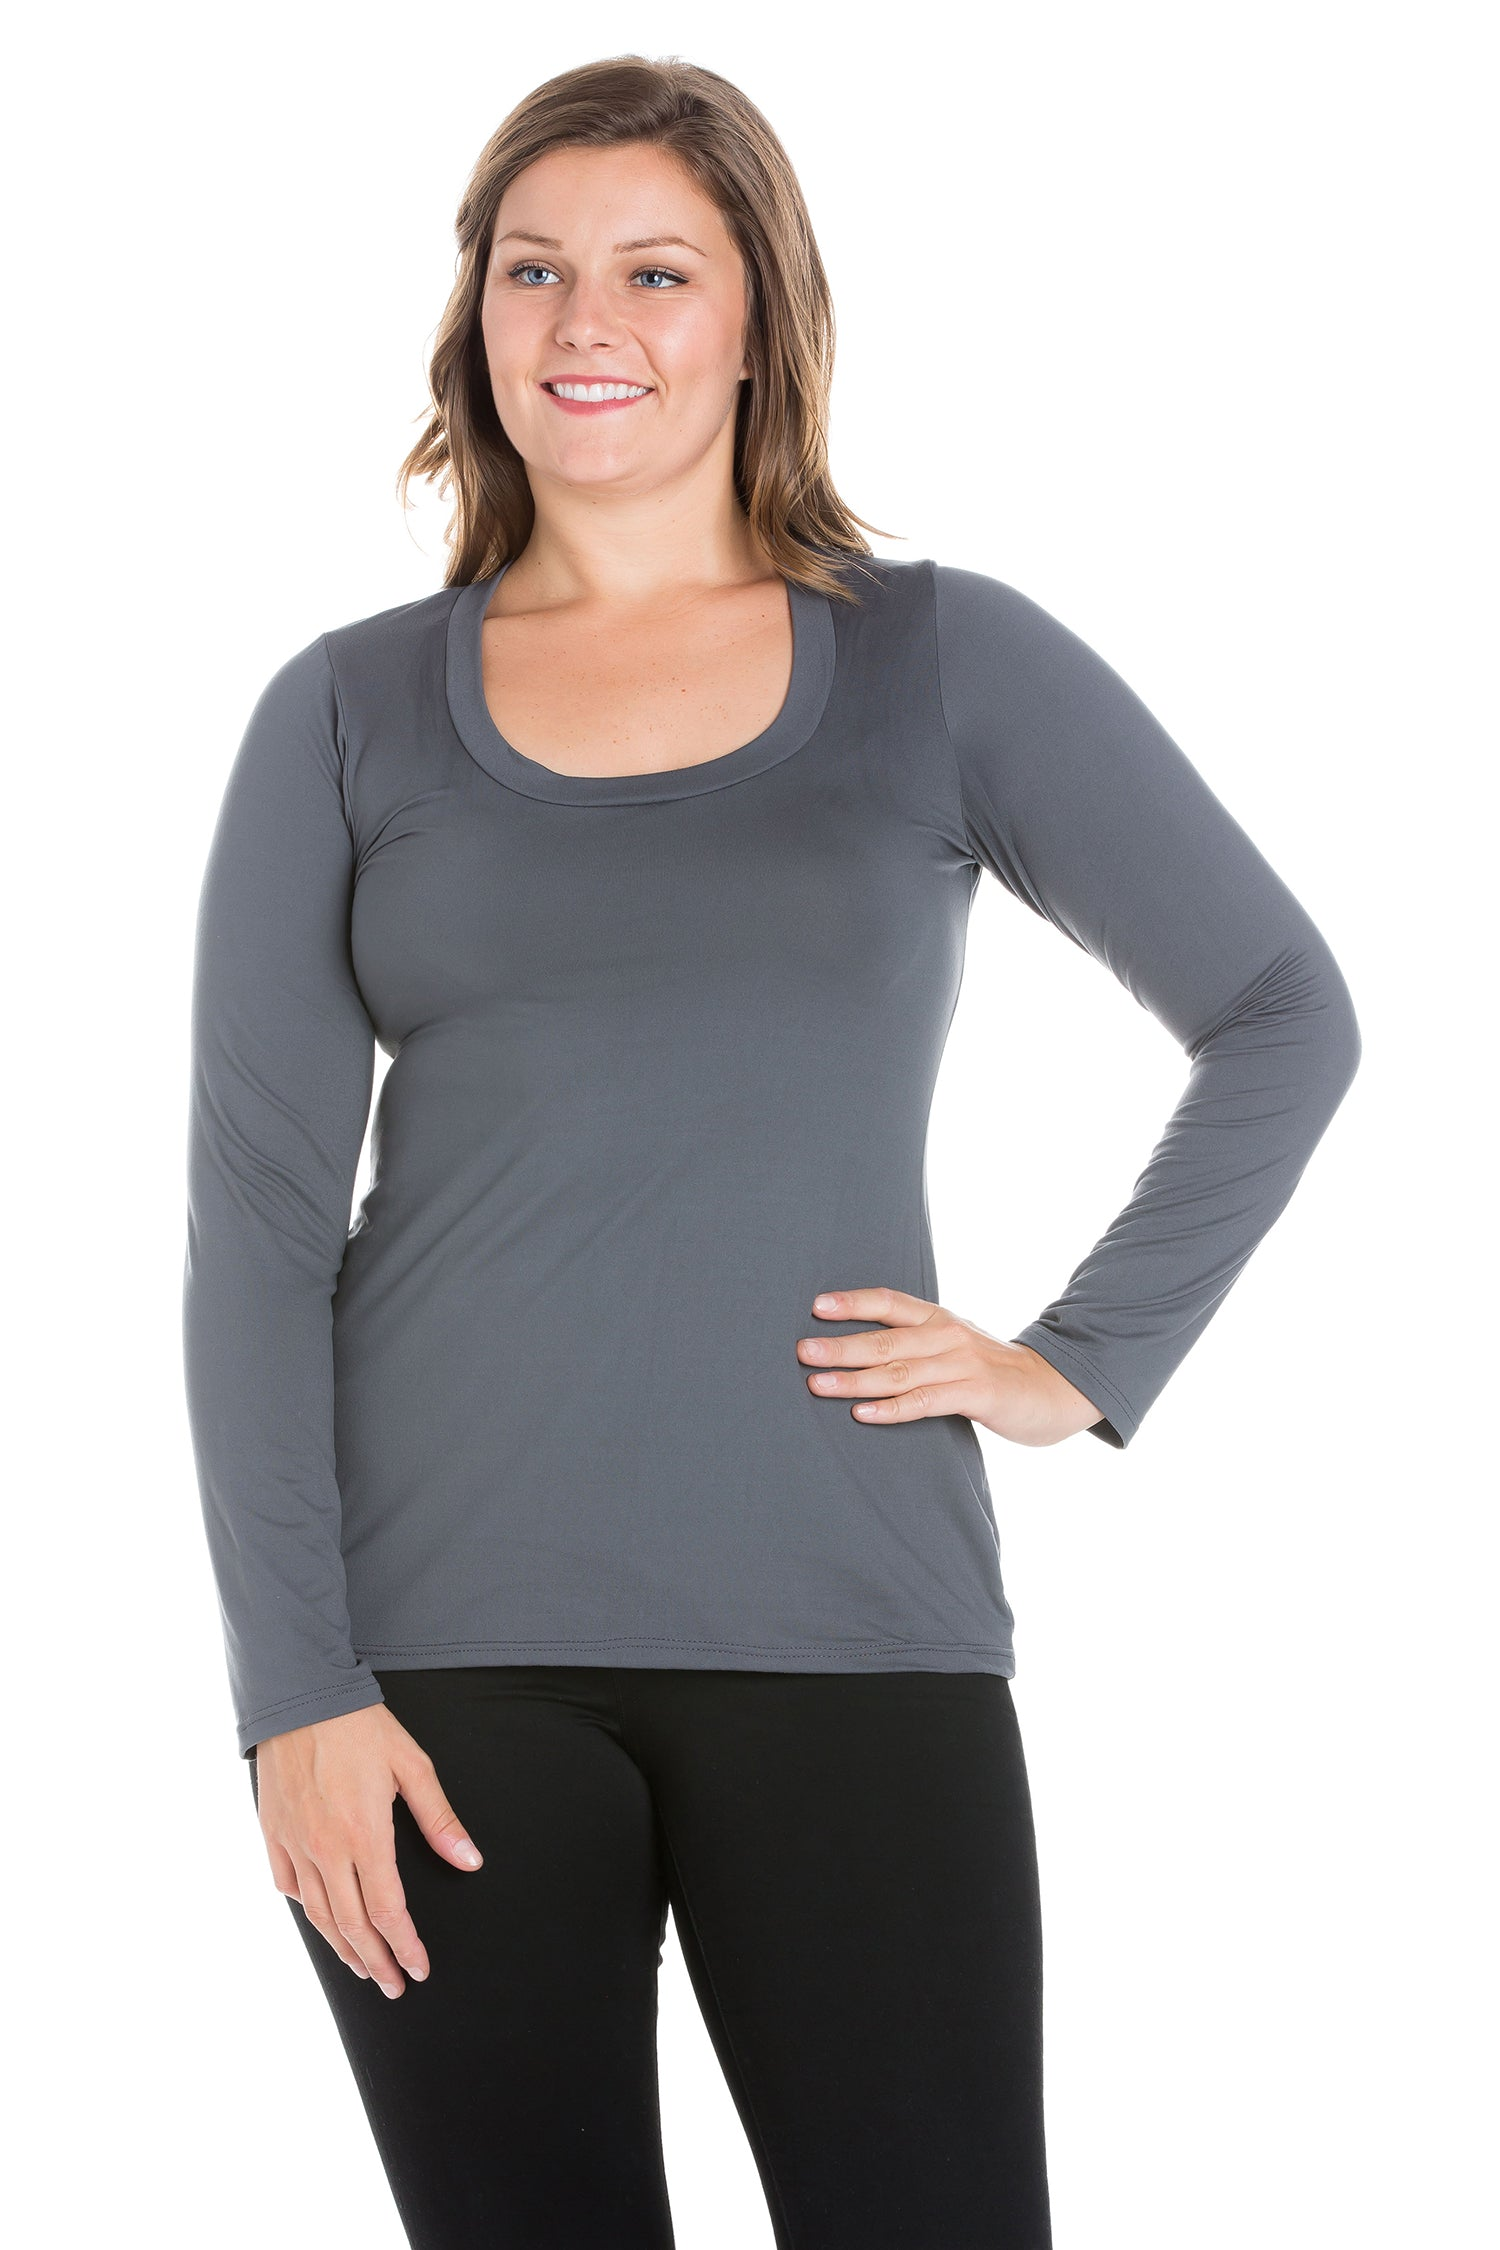 24seven Comfort Apparel Solid Long Sleeve Scoop Neck Plus Size Womens Tee-TOPS-24Seven Comfort Apparel-CHARCOAL-1X-24/7 Comfort Apparel